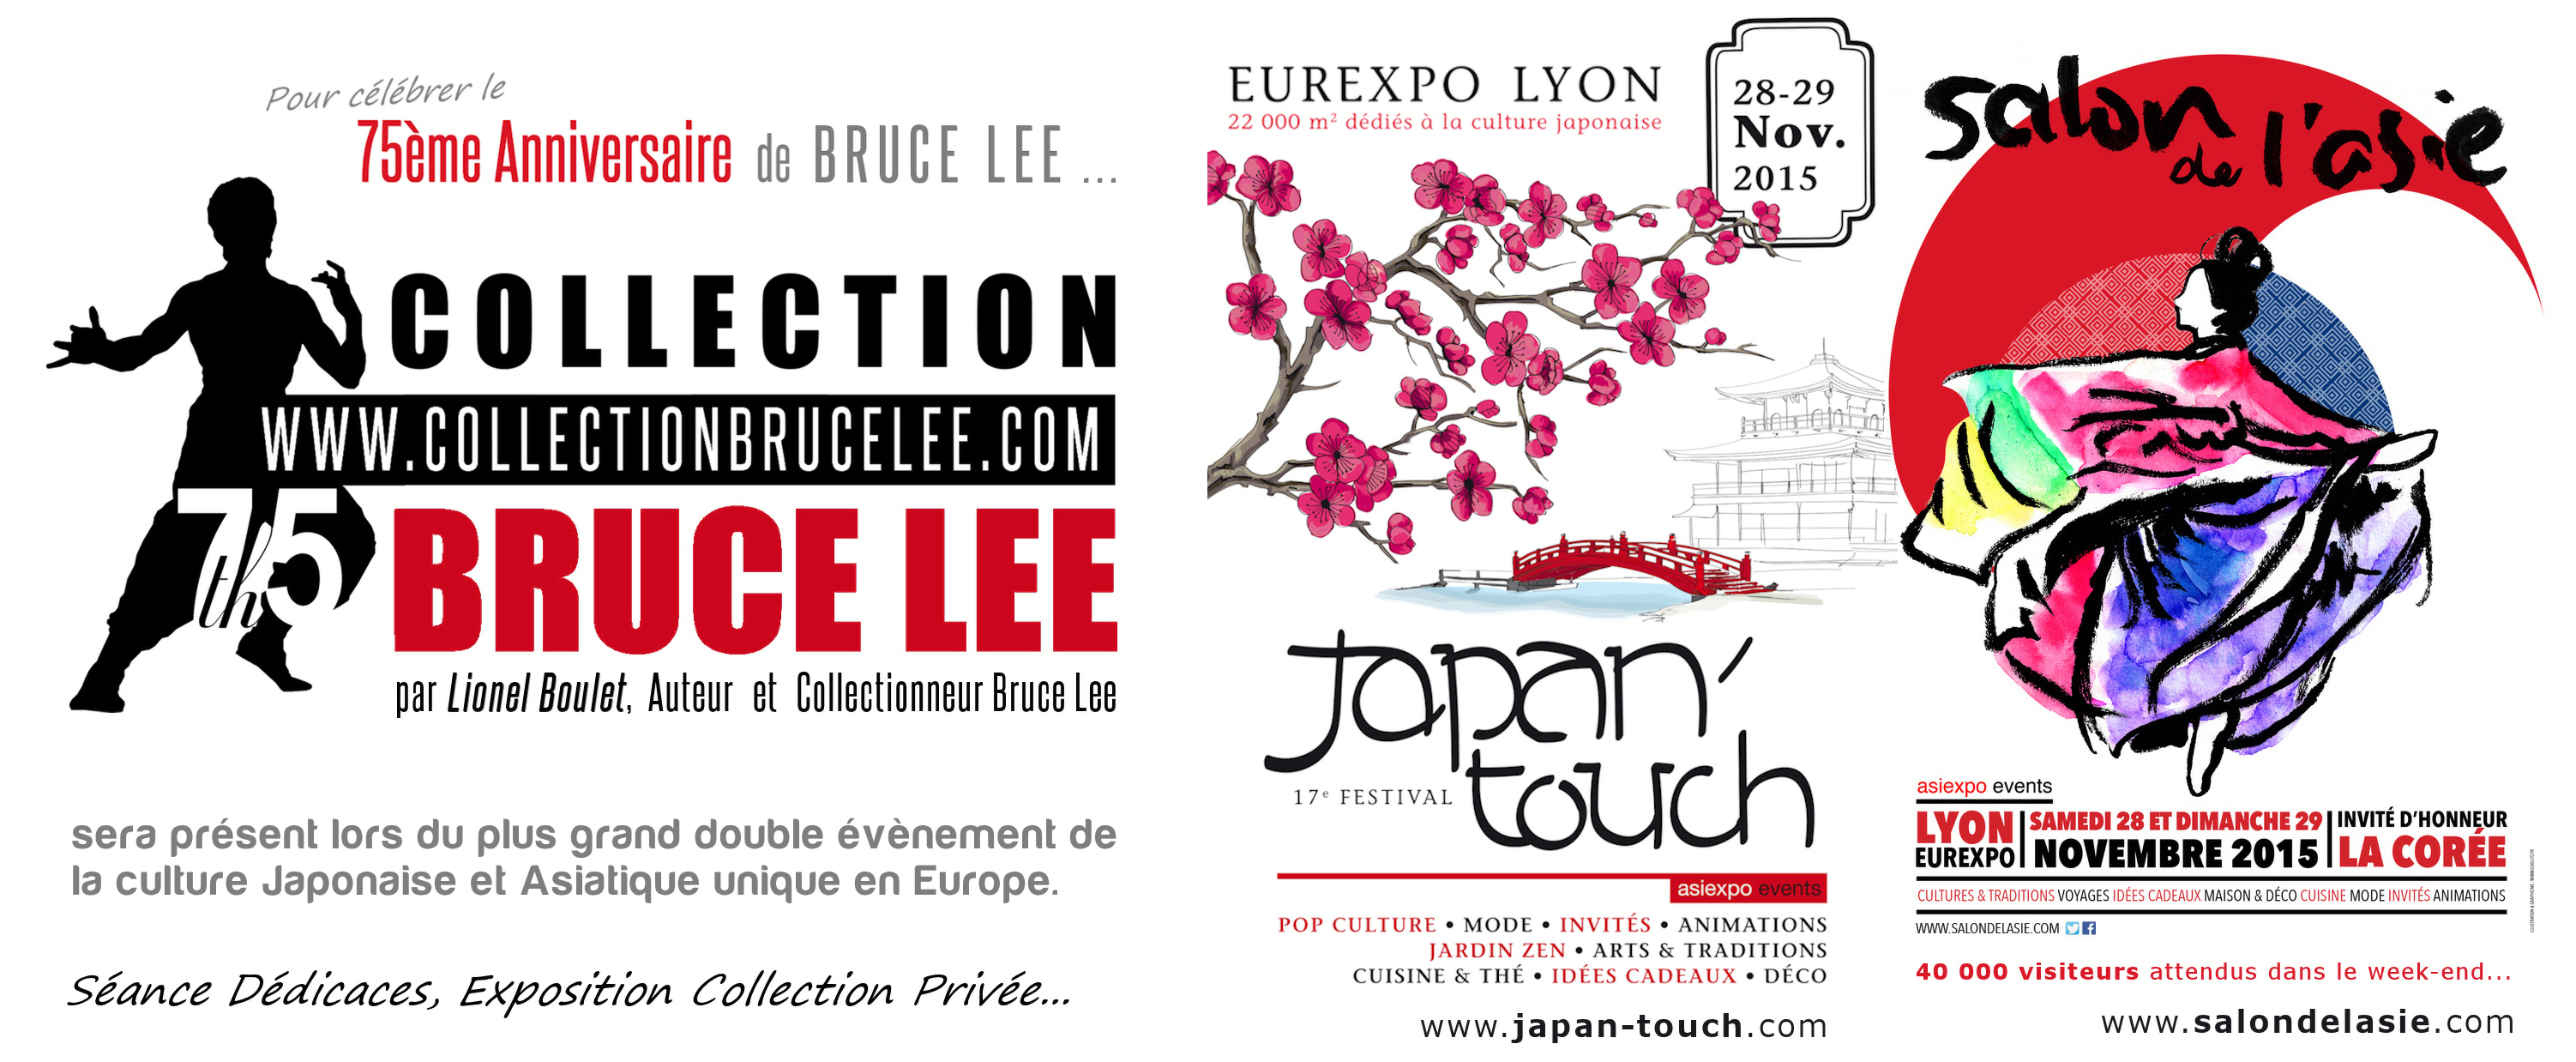 Magasin Déco Asiatique Lyon Collection Bruce Lee My Event 28 29 11 2015